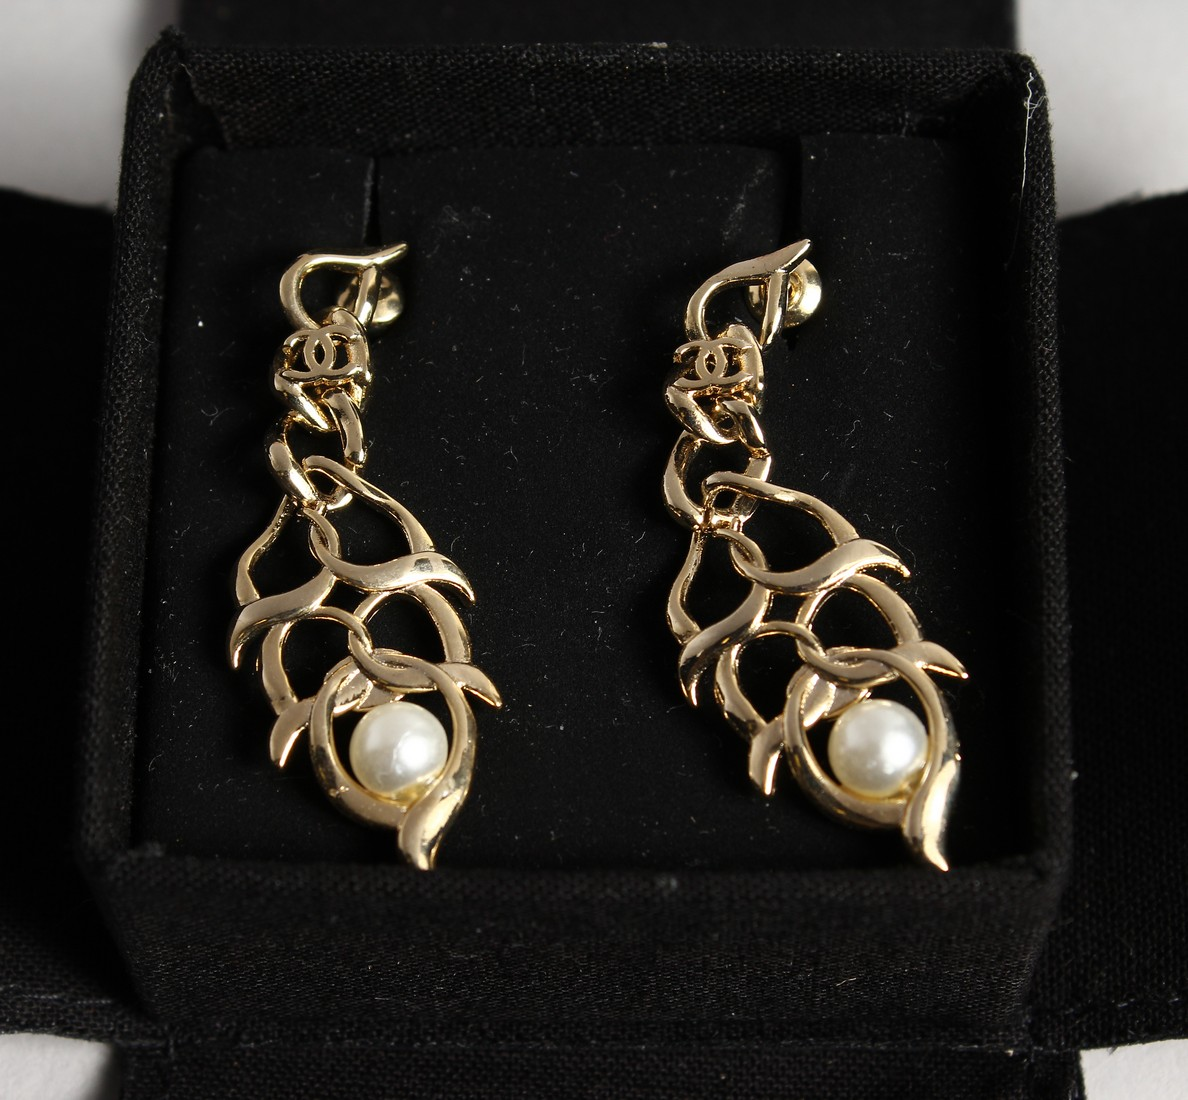 A PAIR OF CHANEL REPLICA EARRINGS in a box